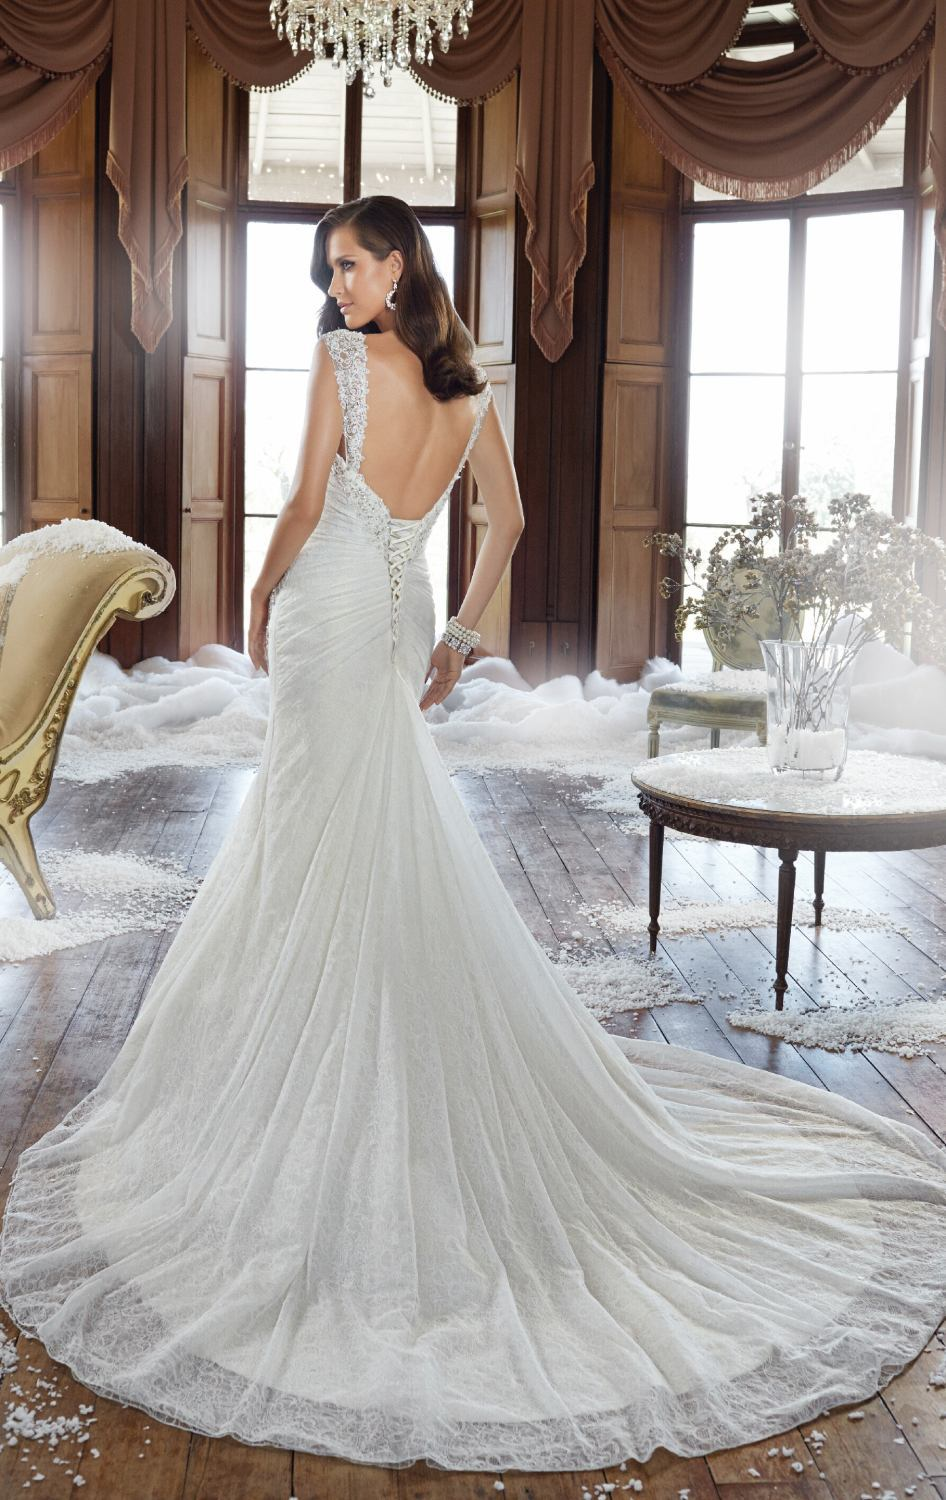 wedding dresses with lace and low back low back wedding dress Wedding Dresses With Lace And Low Back 40